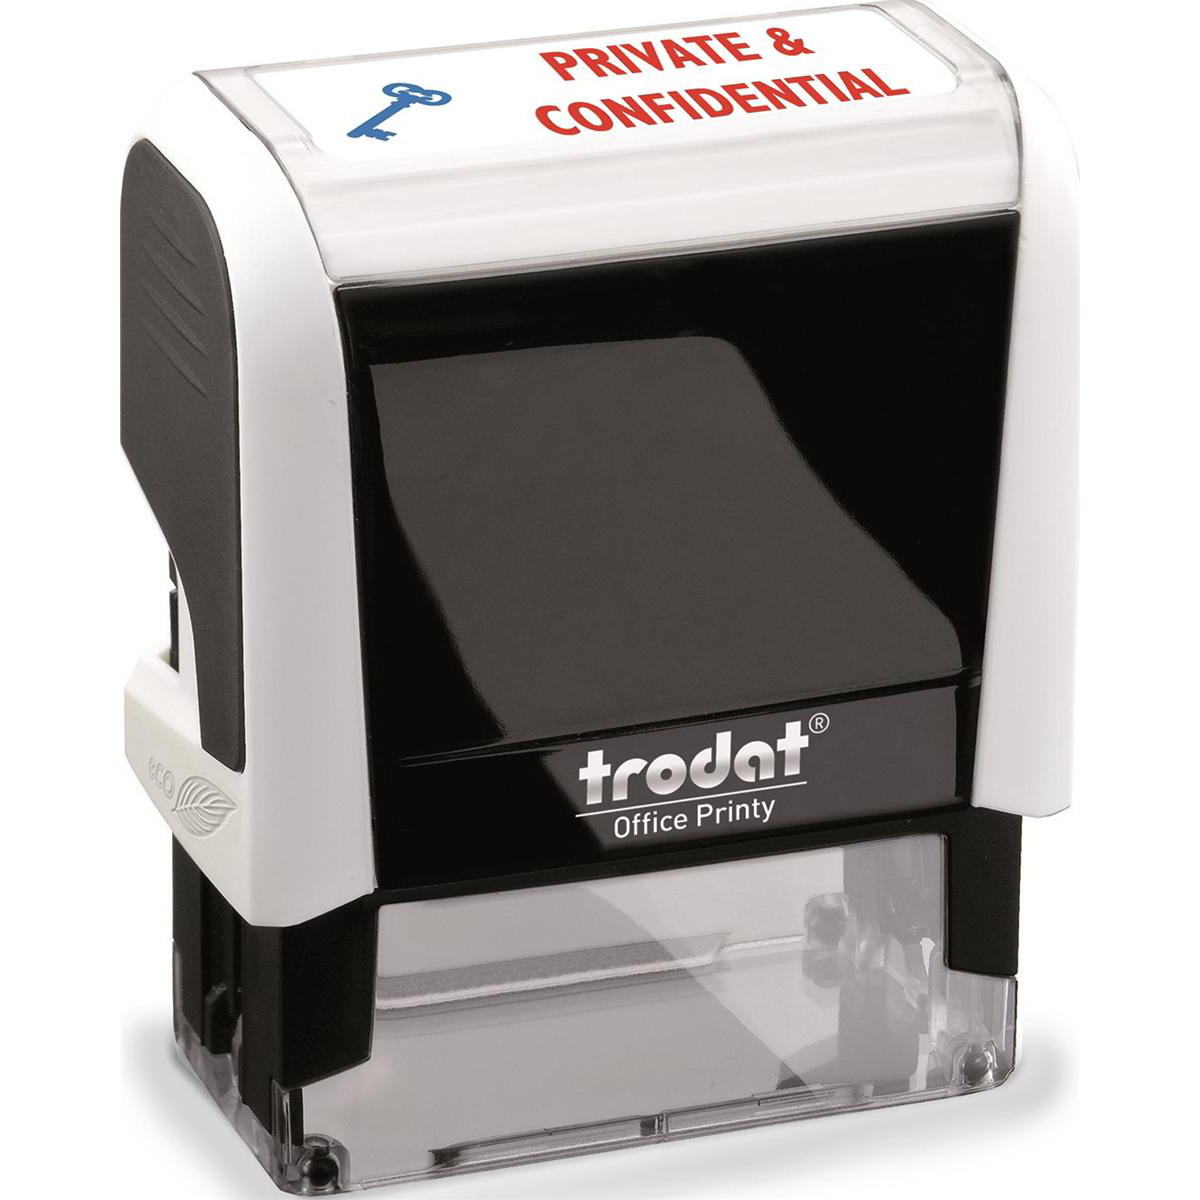 Trodat Office Printy Stamp Self-inking PRIVATE & CONFIDENTIAL 18x46mm Reinkable Red and Blue Ref 77307